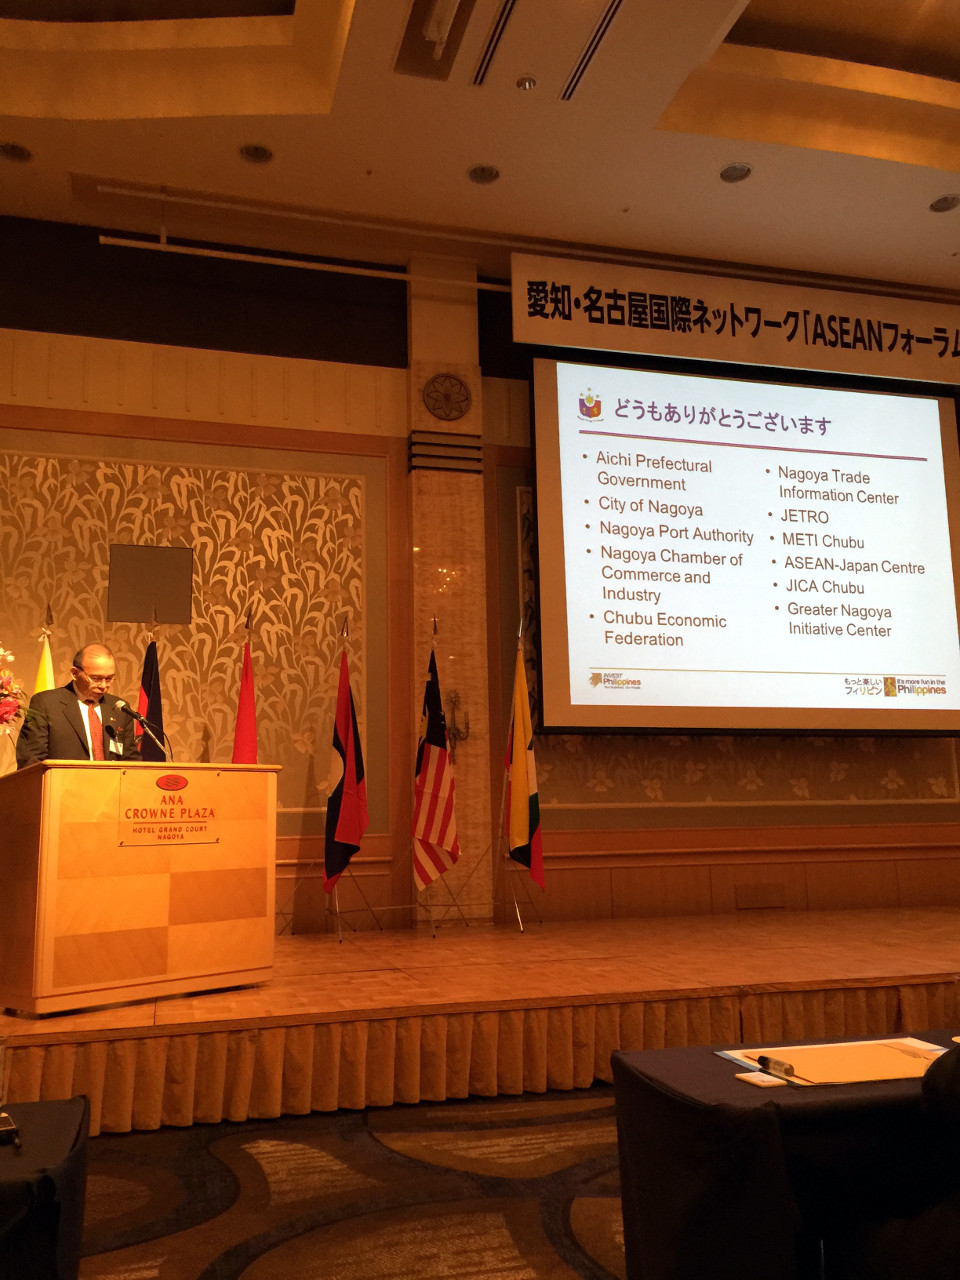 Philippine Embassy in Tokyo Presents New Growth Areas in the Philippine Economy to Industrialists from Aichi Prefecture and City of Nagoya